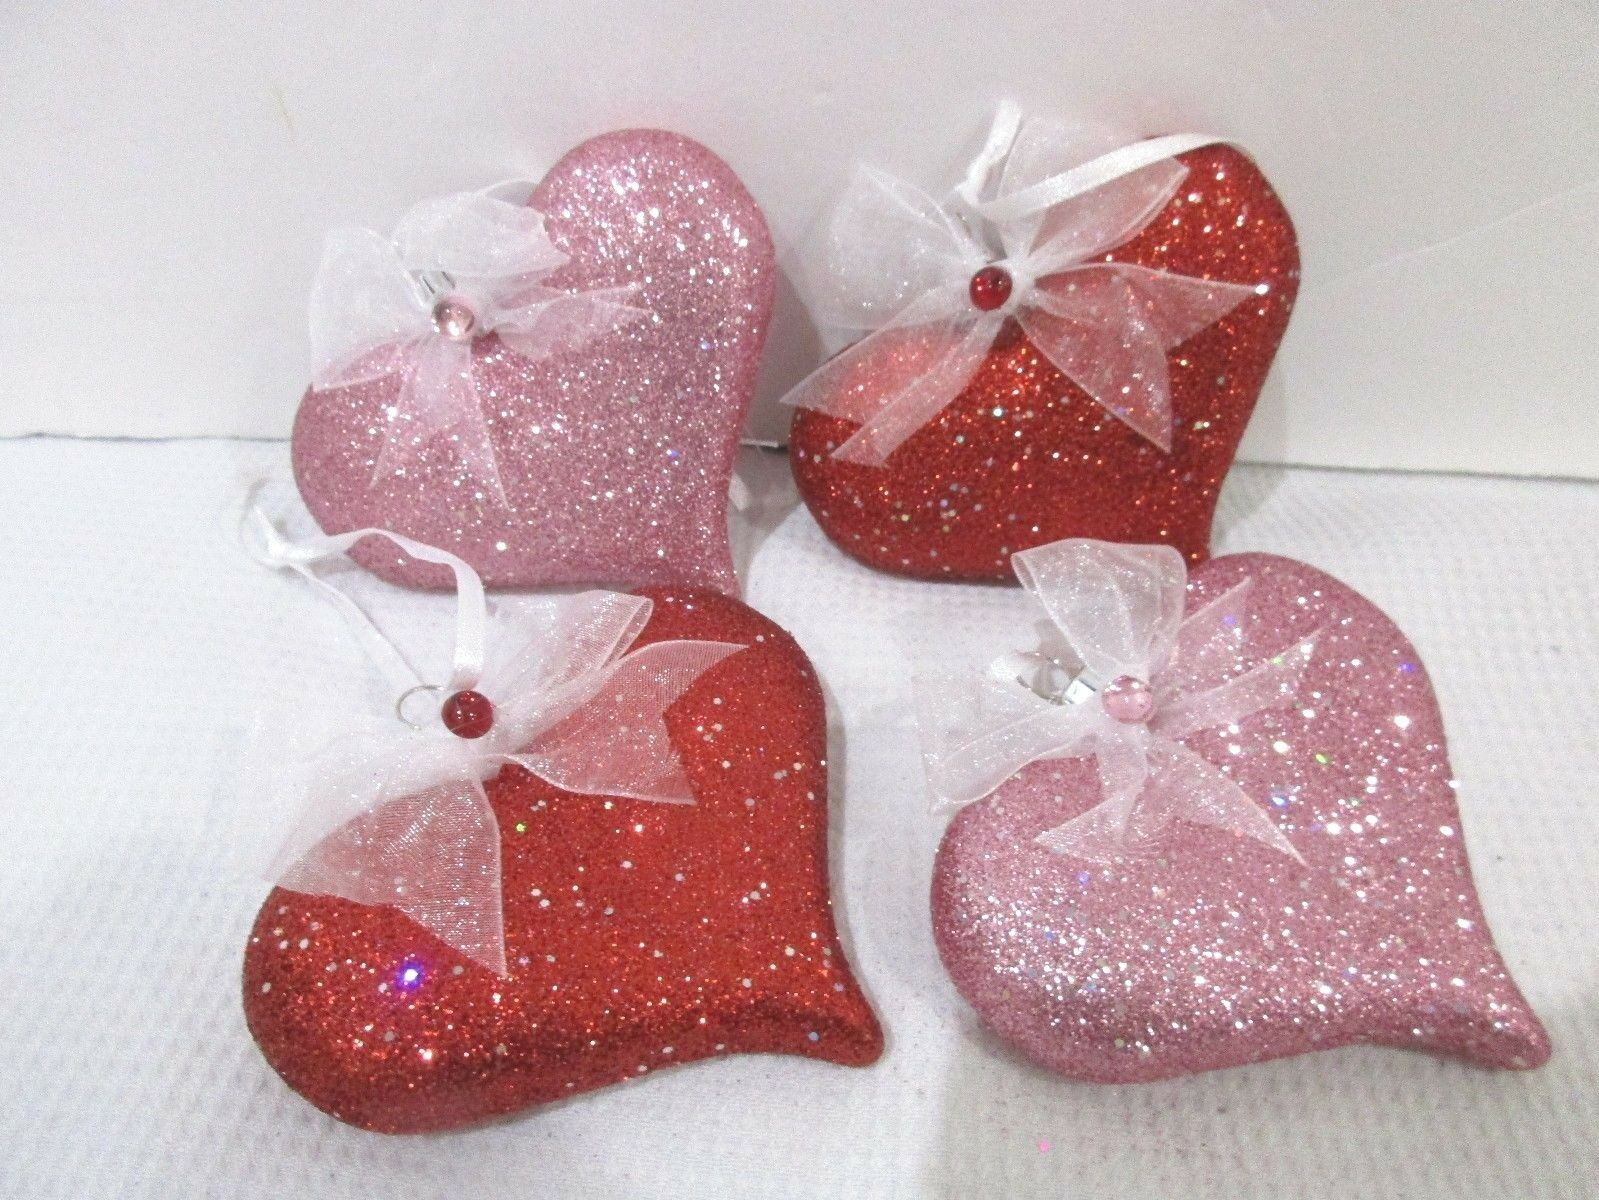 Primary image for Valentines Day Pink Red Glitter Hearts Christmas Ornaments Decorations S/4